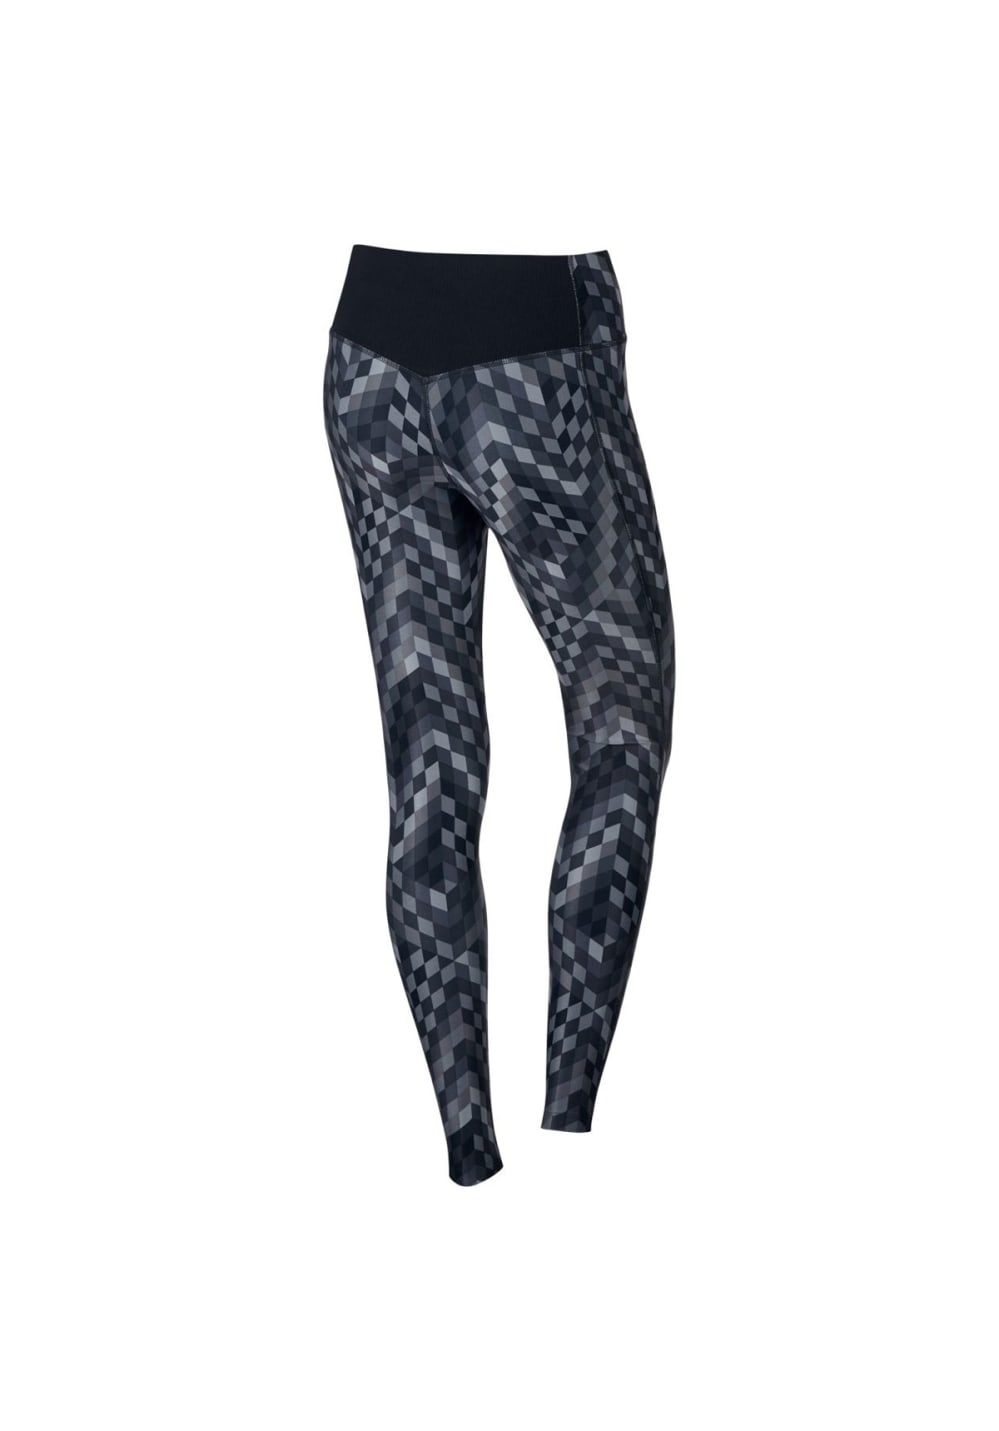 1b2f69ad406a9 Next. Nike. Power Legend Training Tight - Running trousers for Women